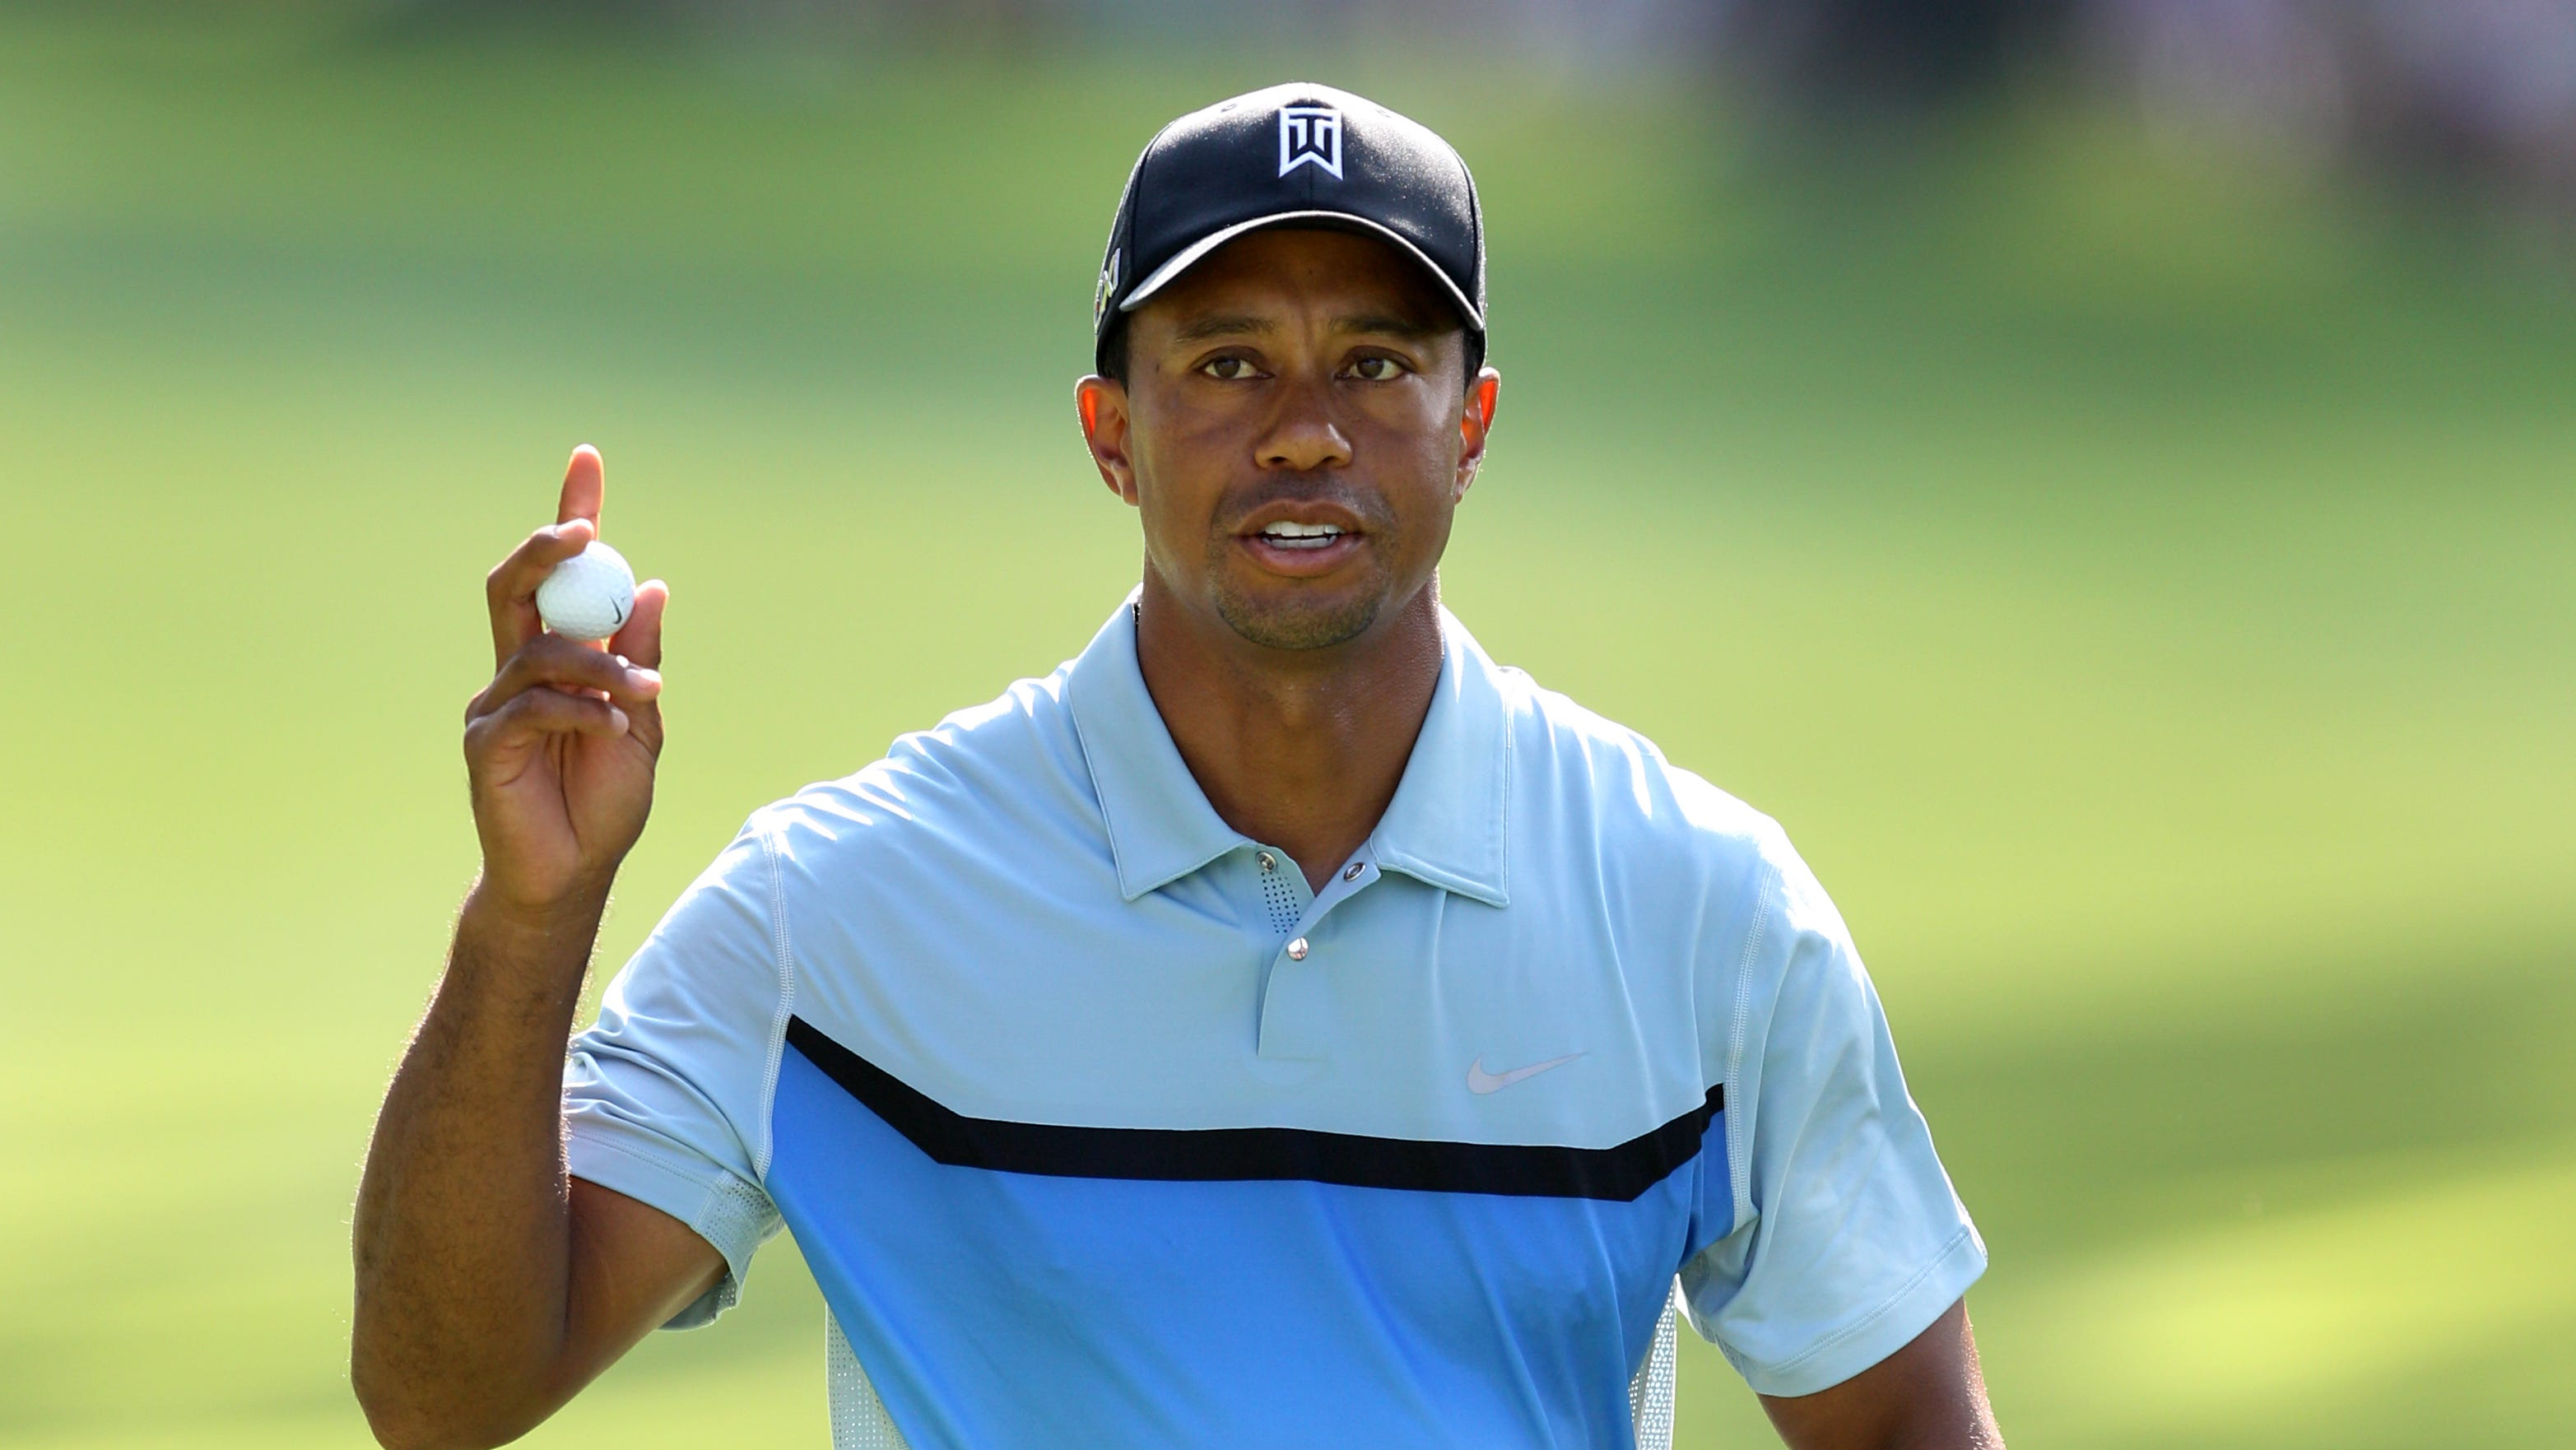 Tiger Woods waves after his birdie putt on 13.